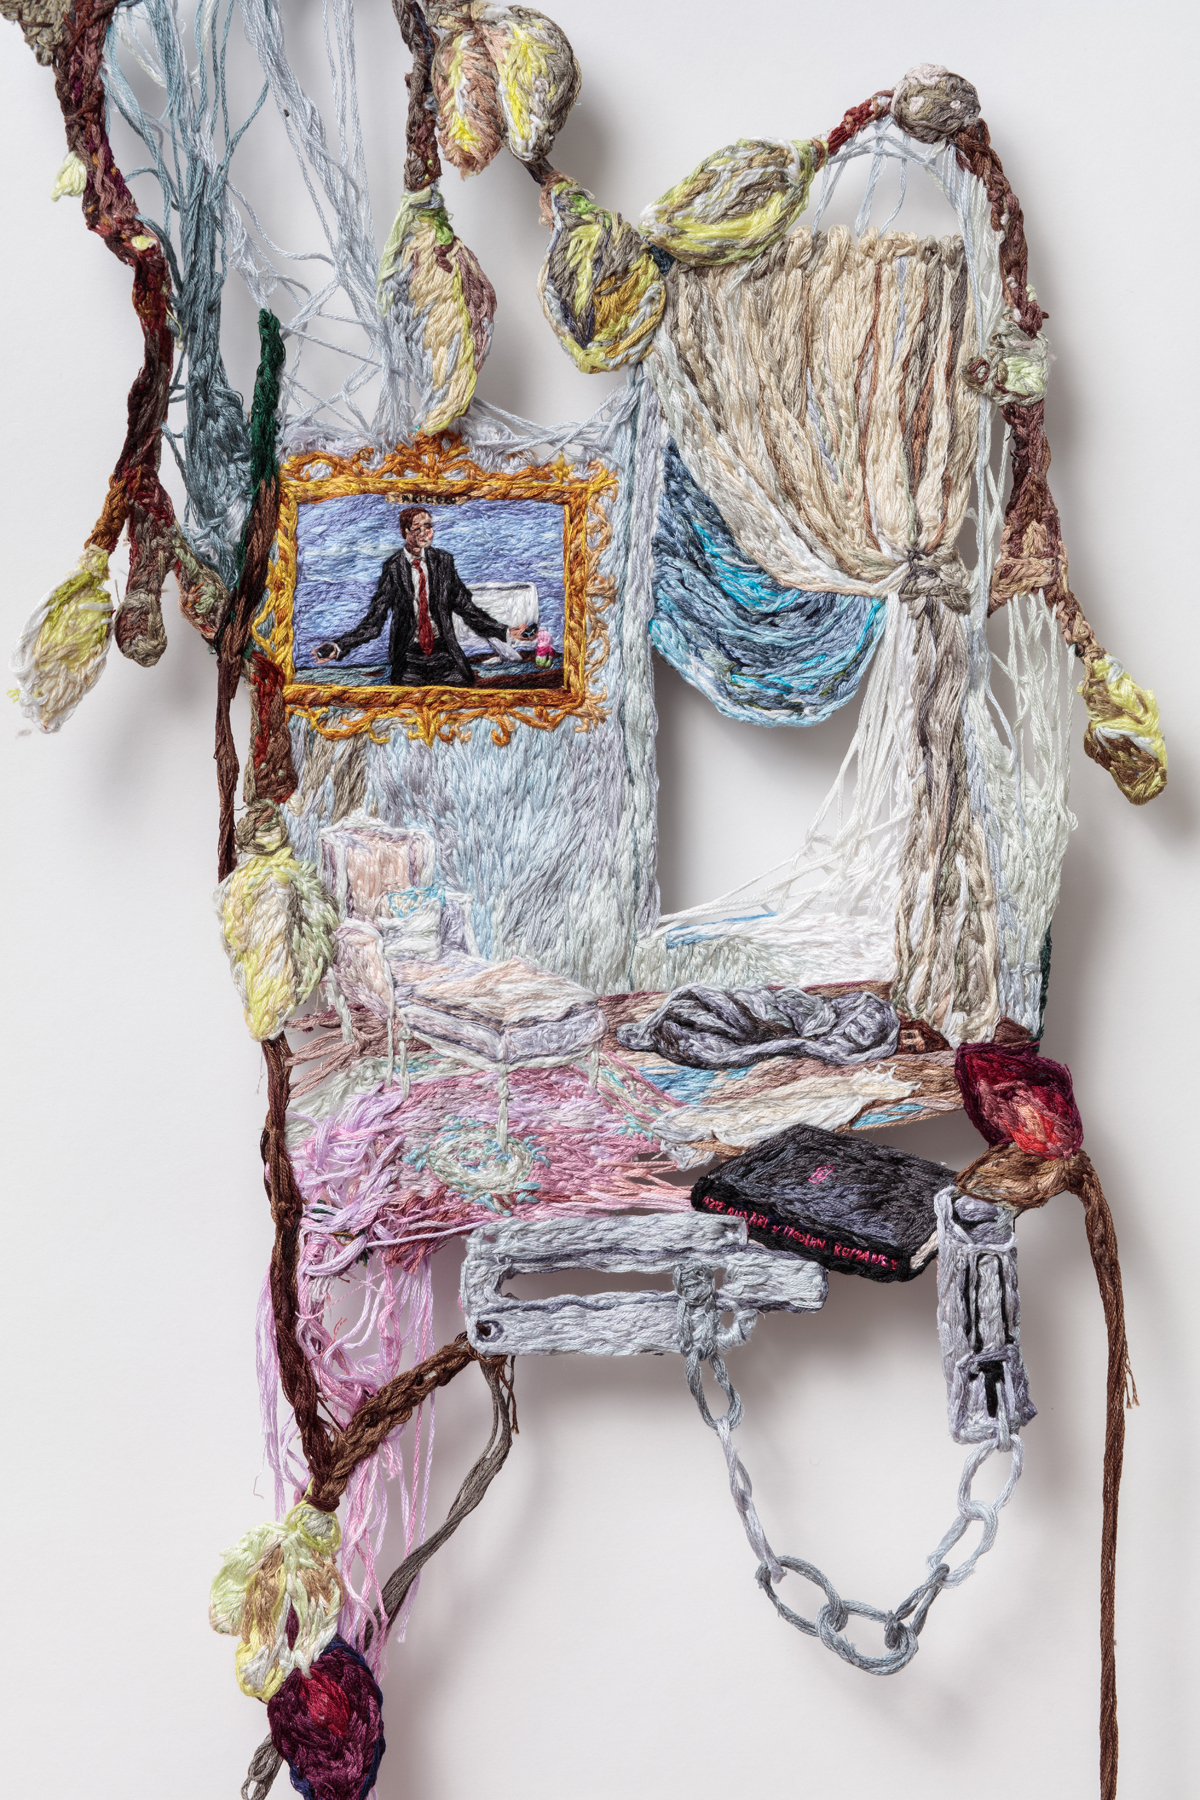 02. I Can't Stop Crying Except Sometimes When I Think of Ari Gold (detail), 2016, Embroidery Thread and Fabric, 34 x 12 in.jpg